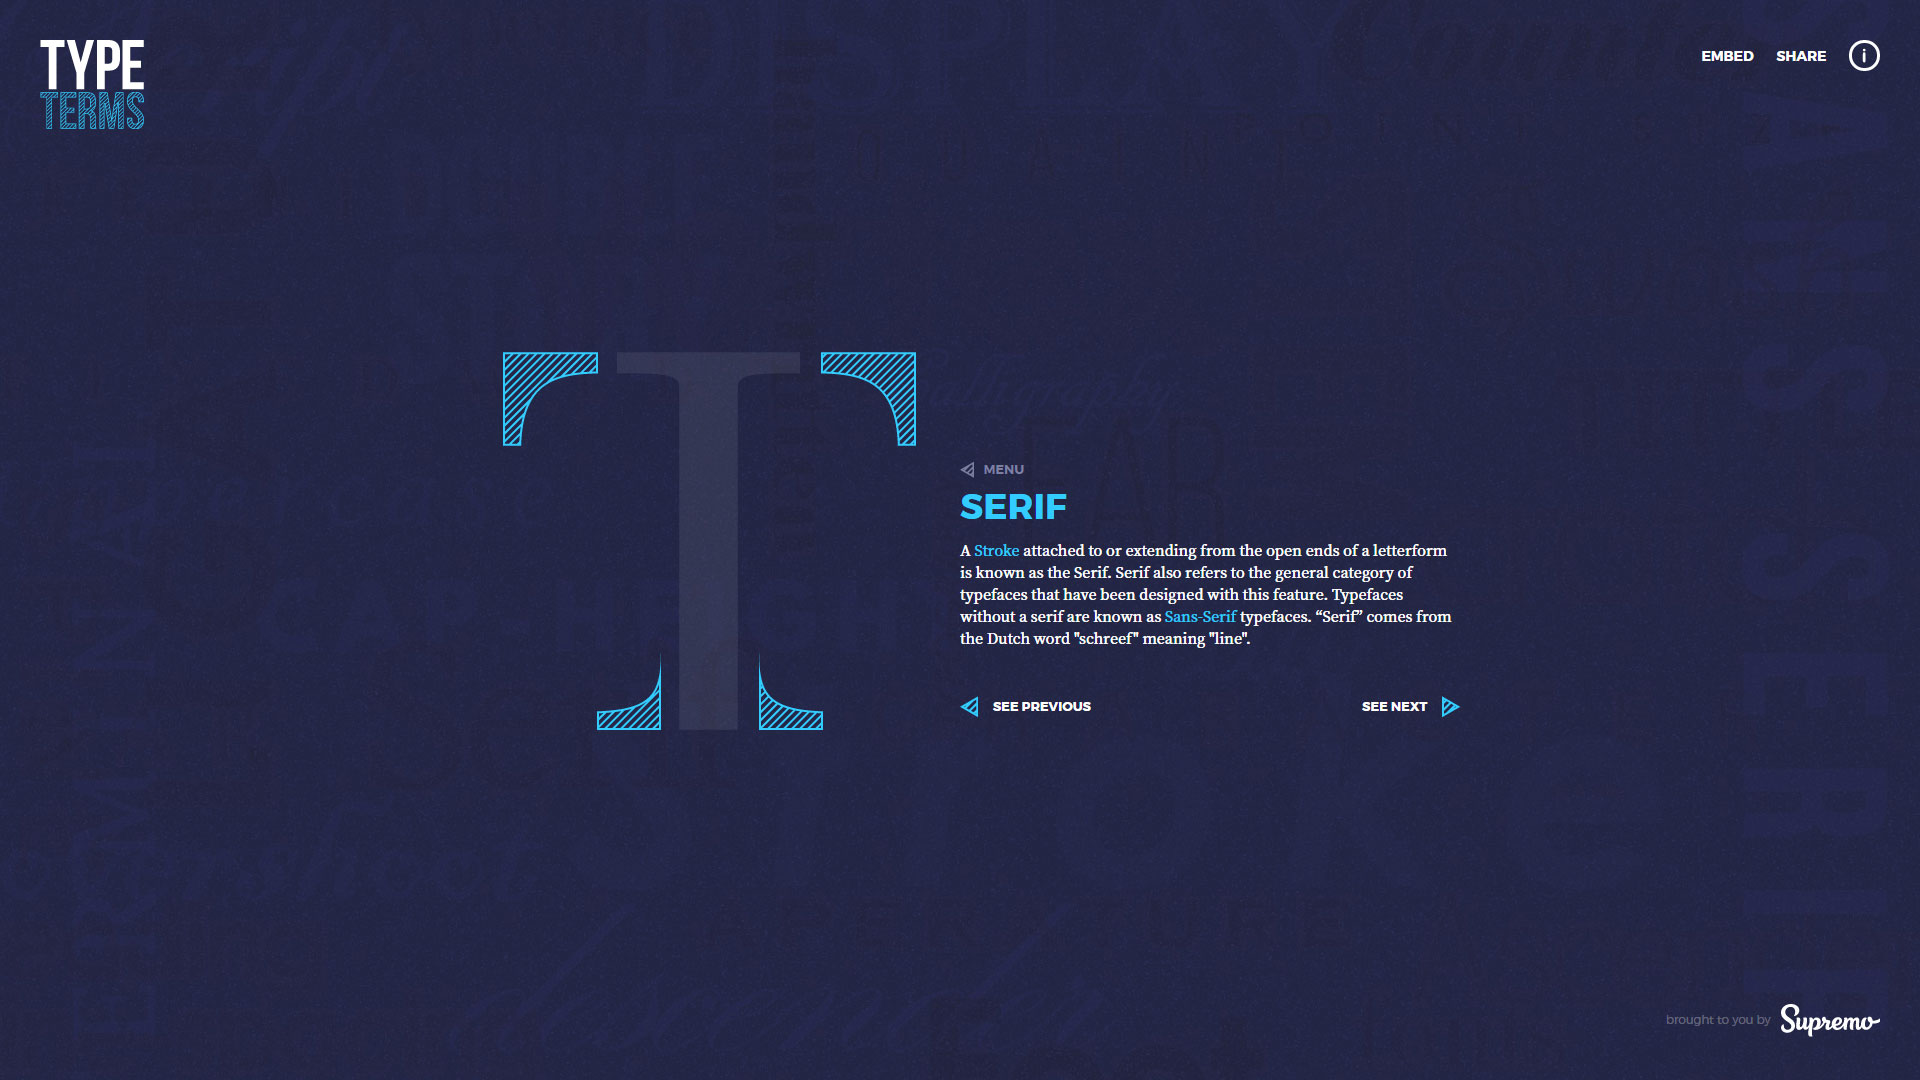 Typography: Type terms